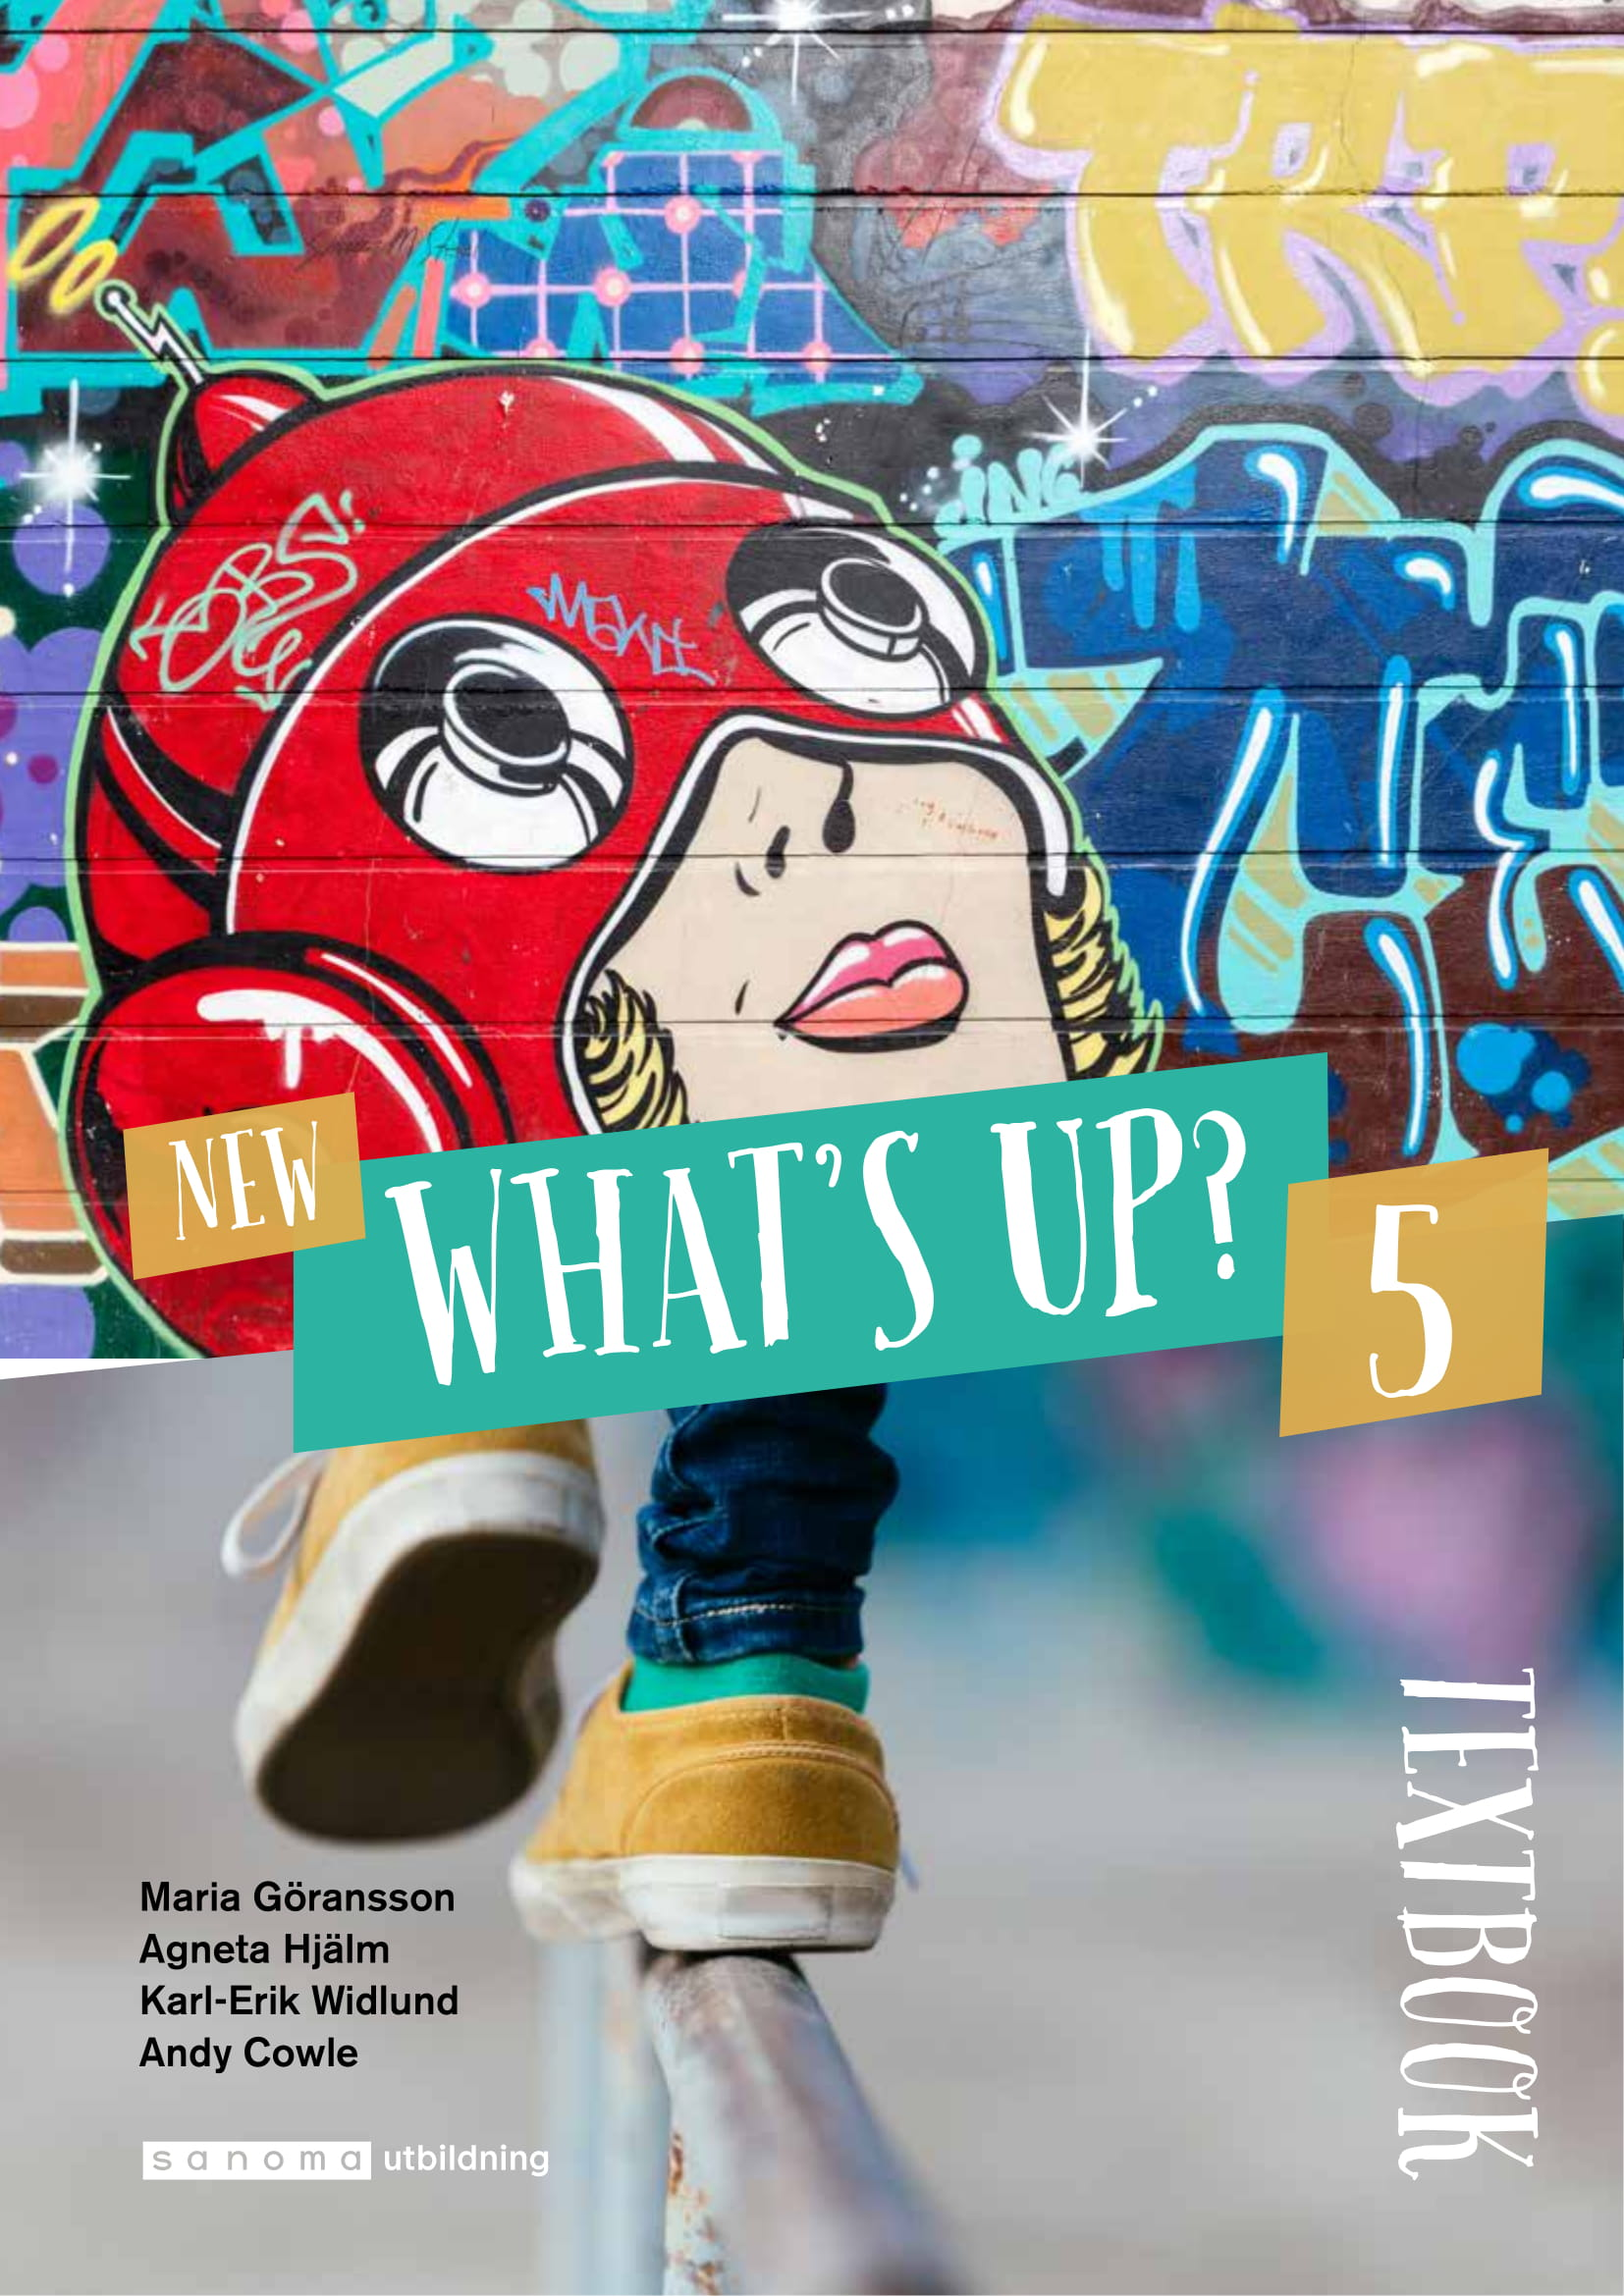 New What's Up? 5